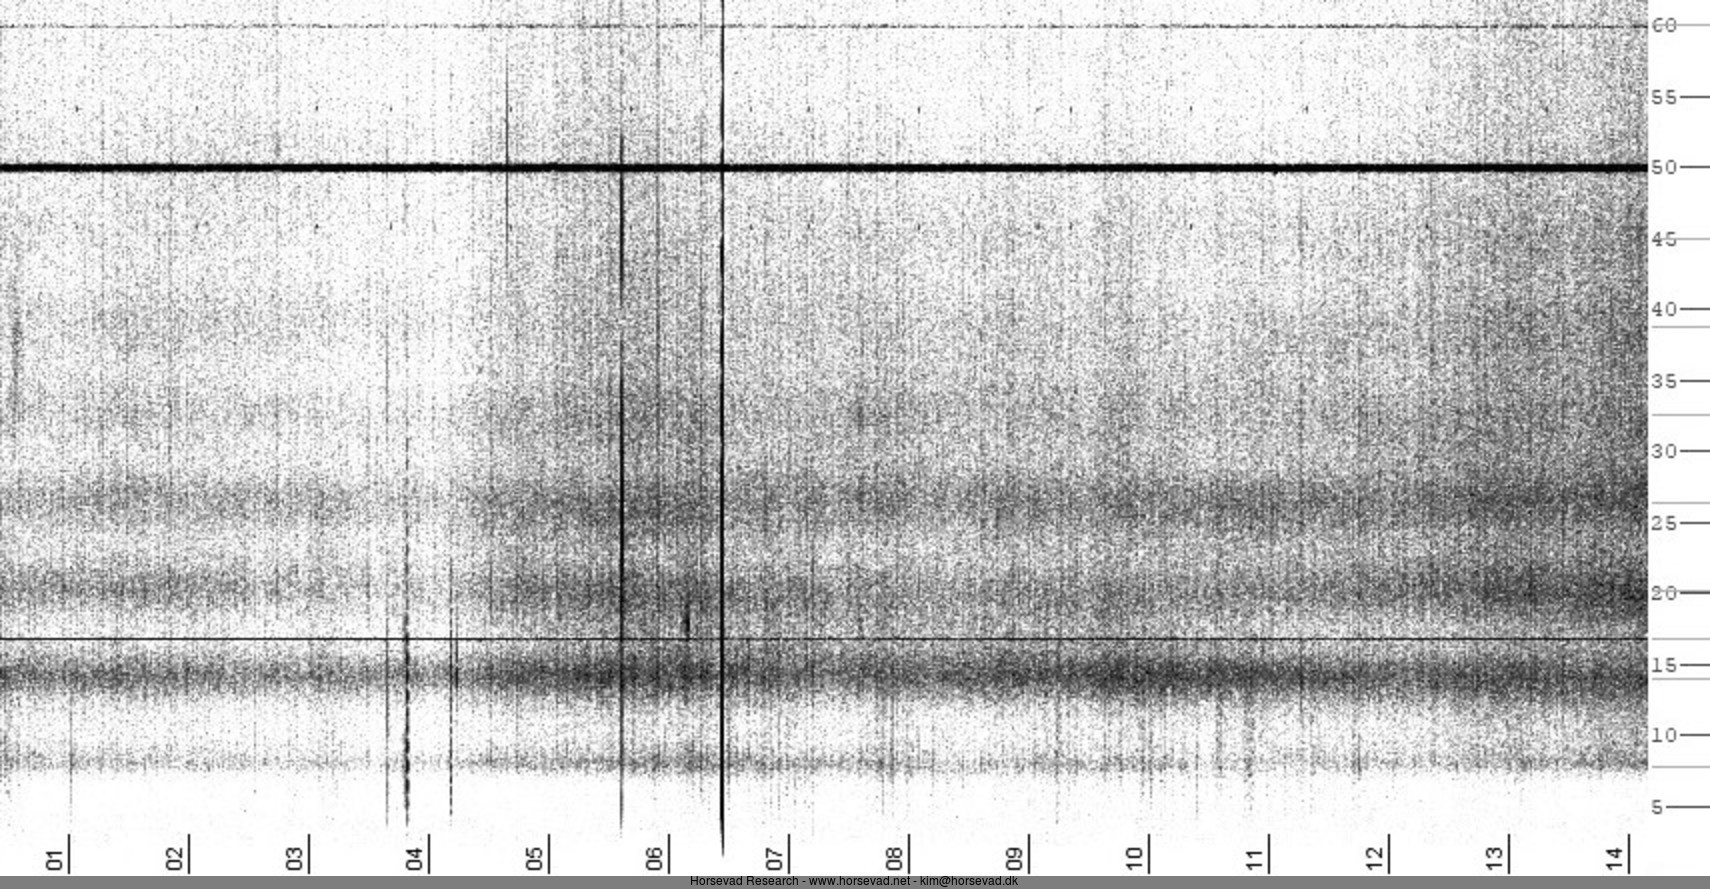 Schumann Resonance Monitor @ Horsevad Independent Technical Research and Analysis --- www.horsevad.net